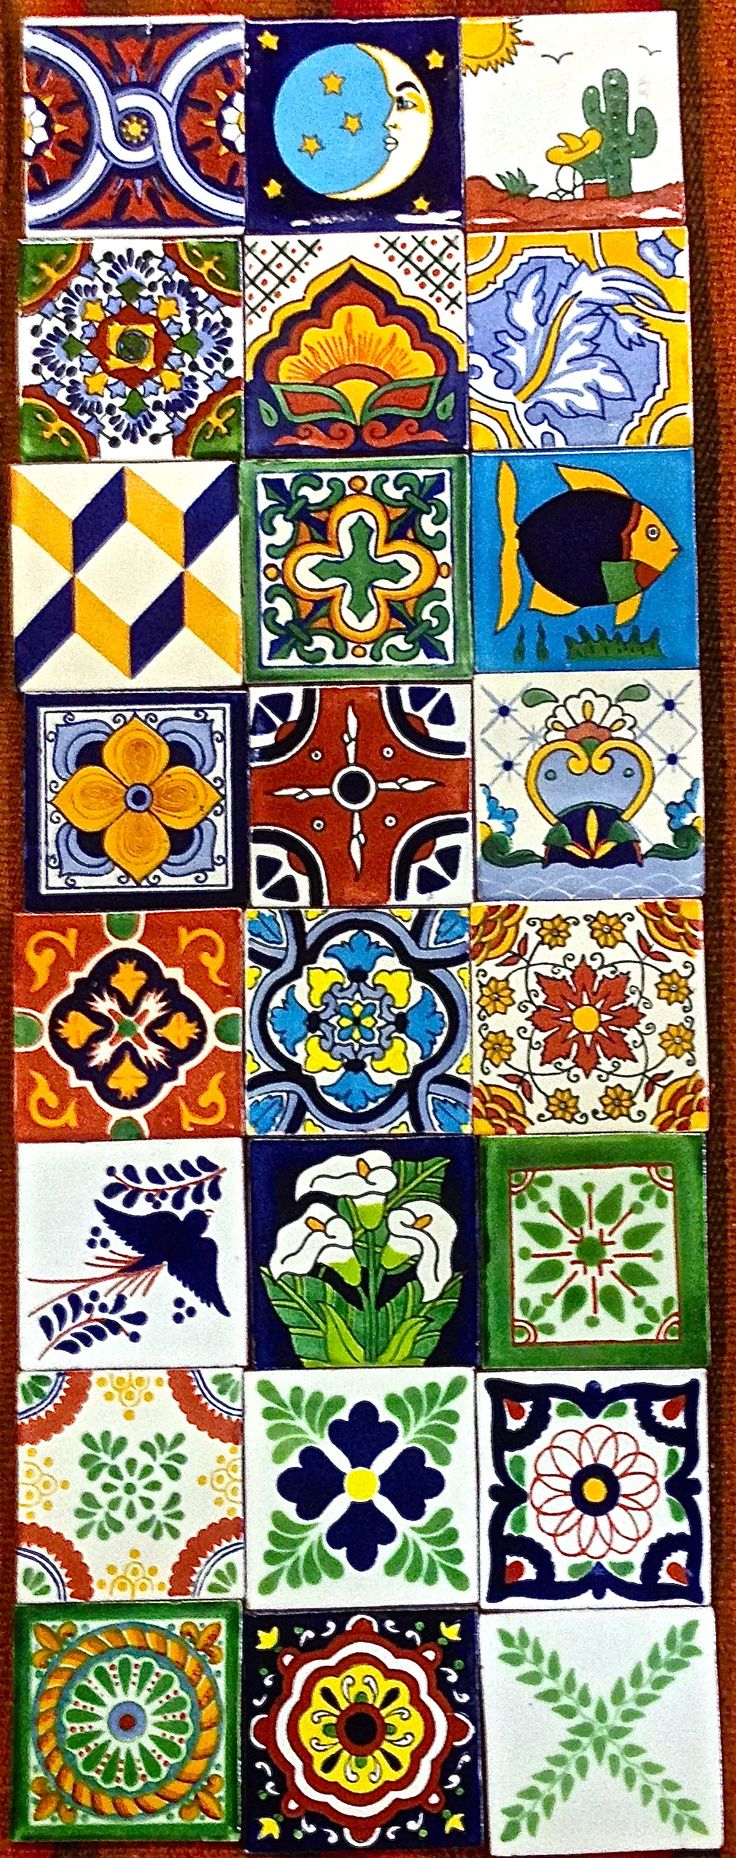 If you are looking for the rustic, antique look of Old Mexico, traditional tile is perfect for you. We have over 100 Talavera rustic, antique-look styles to choose from. Individually hand-painted in Mexico and red clay fired in wood kilns in the traditional method, slight variations in color and crazing are normal and part of the charm!